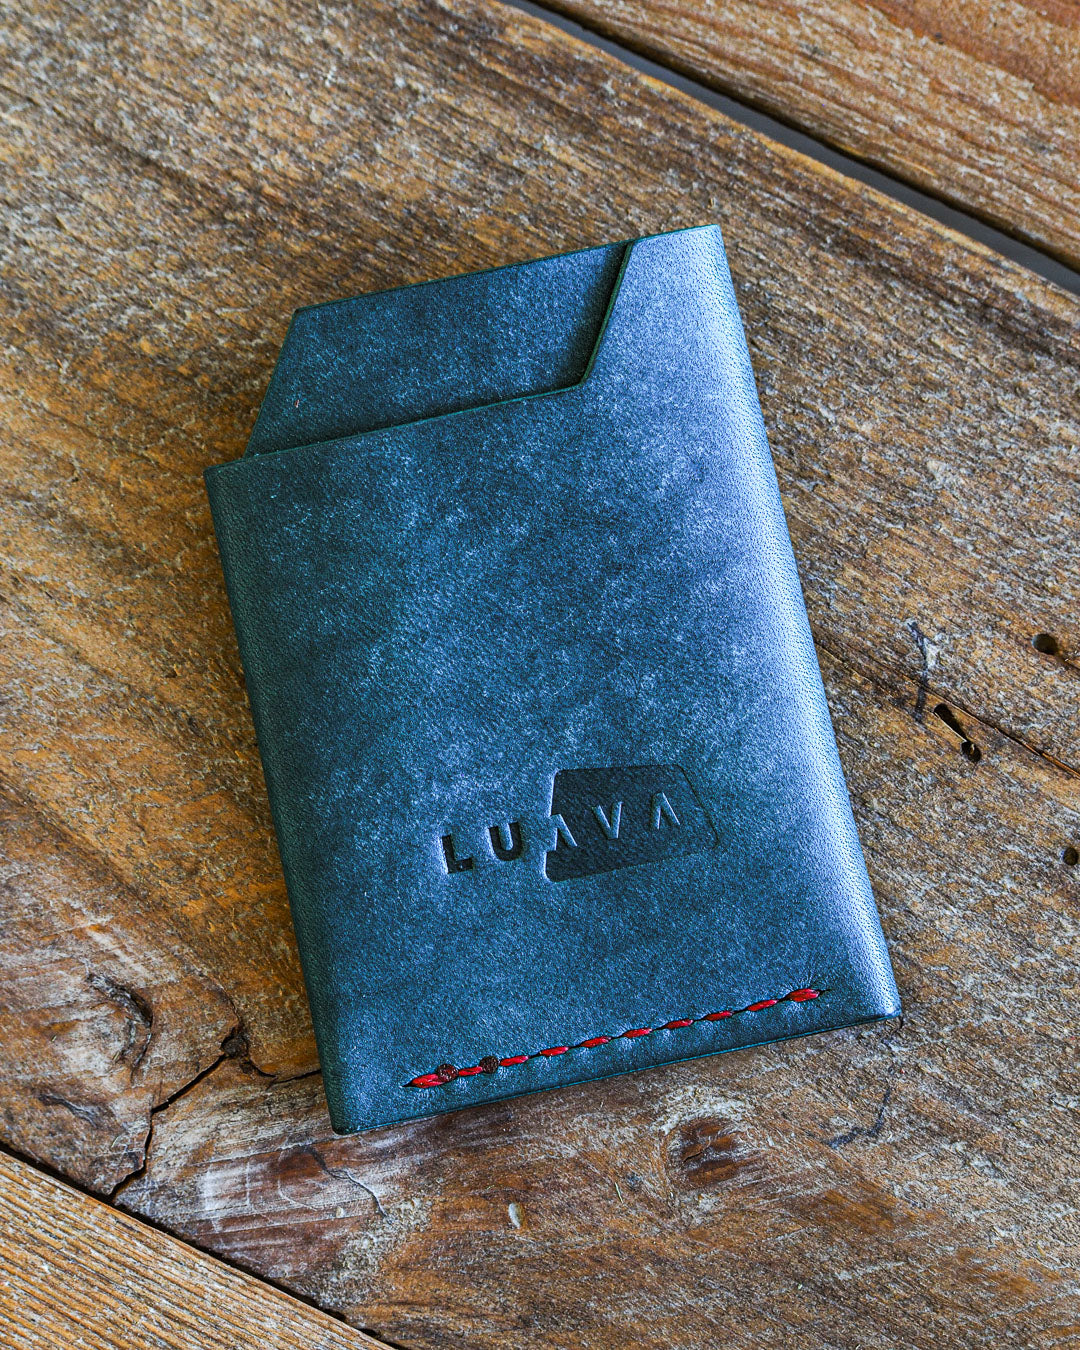 Luava handmade leather wallet handcrafted card holder wrap cardholder made in finland vortex maya turquoise back